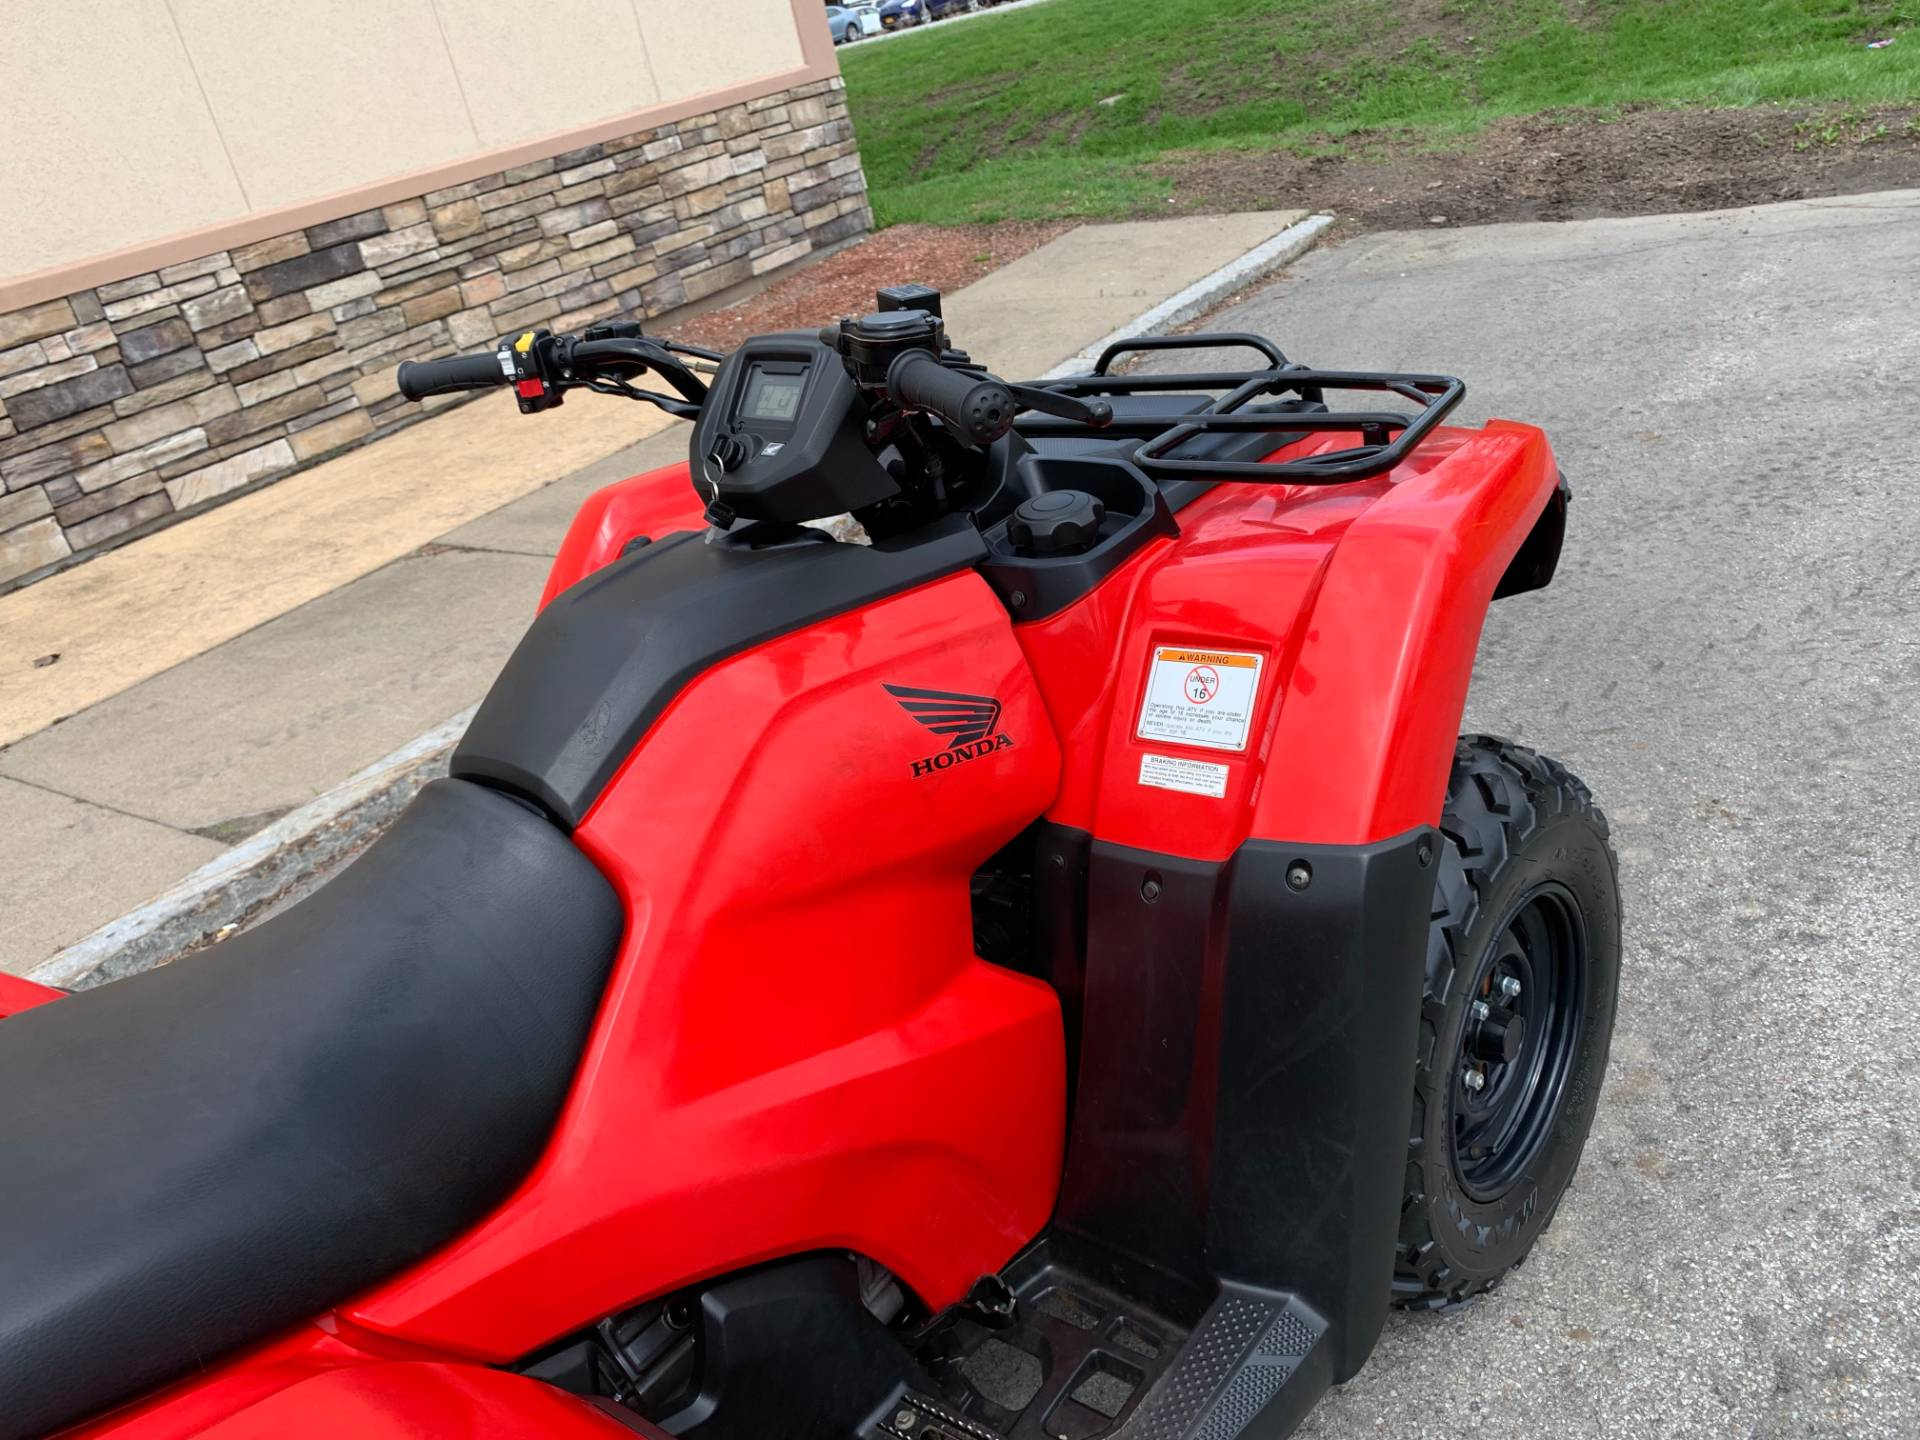 2018 Honda FourTrax Rancher 4x4 in Herkimer, New York - Photo 11